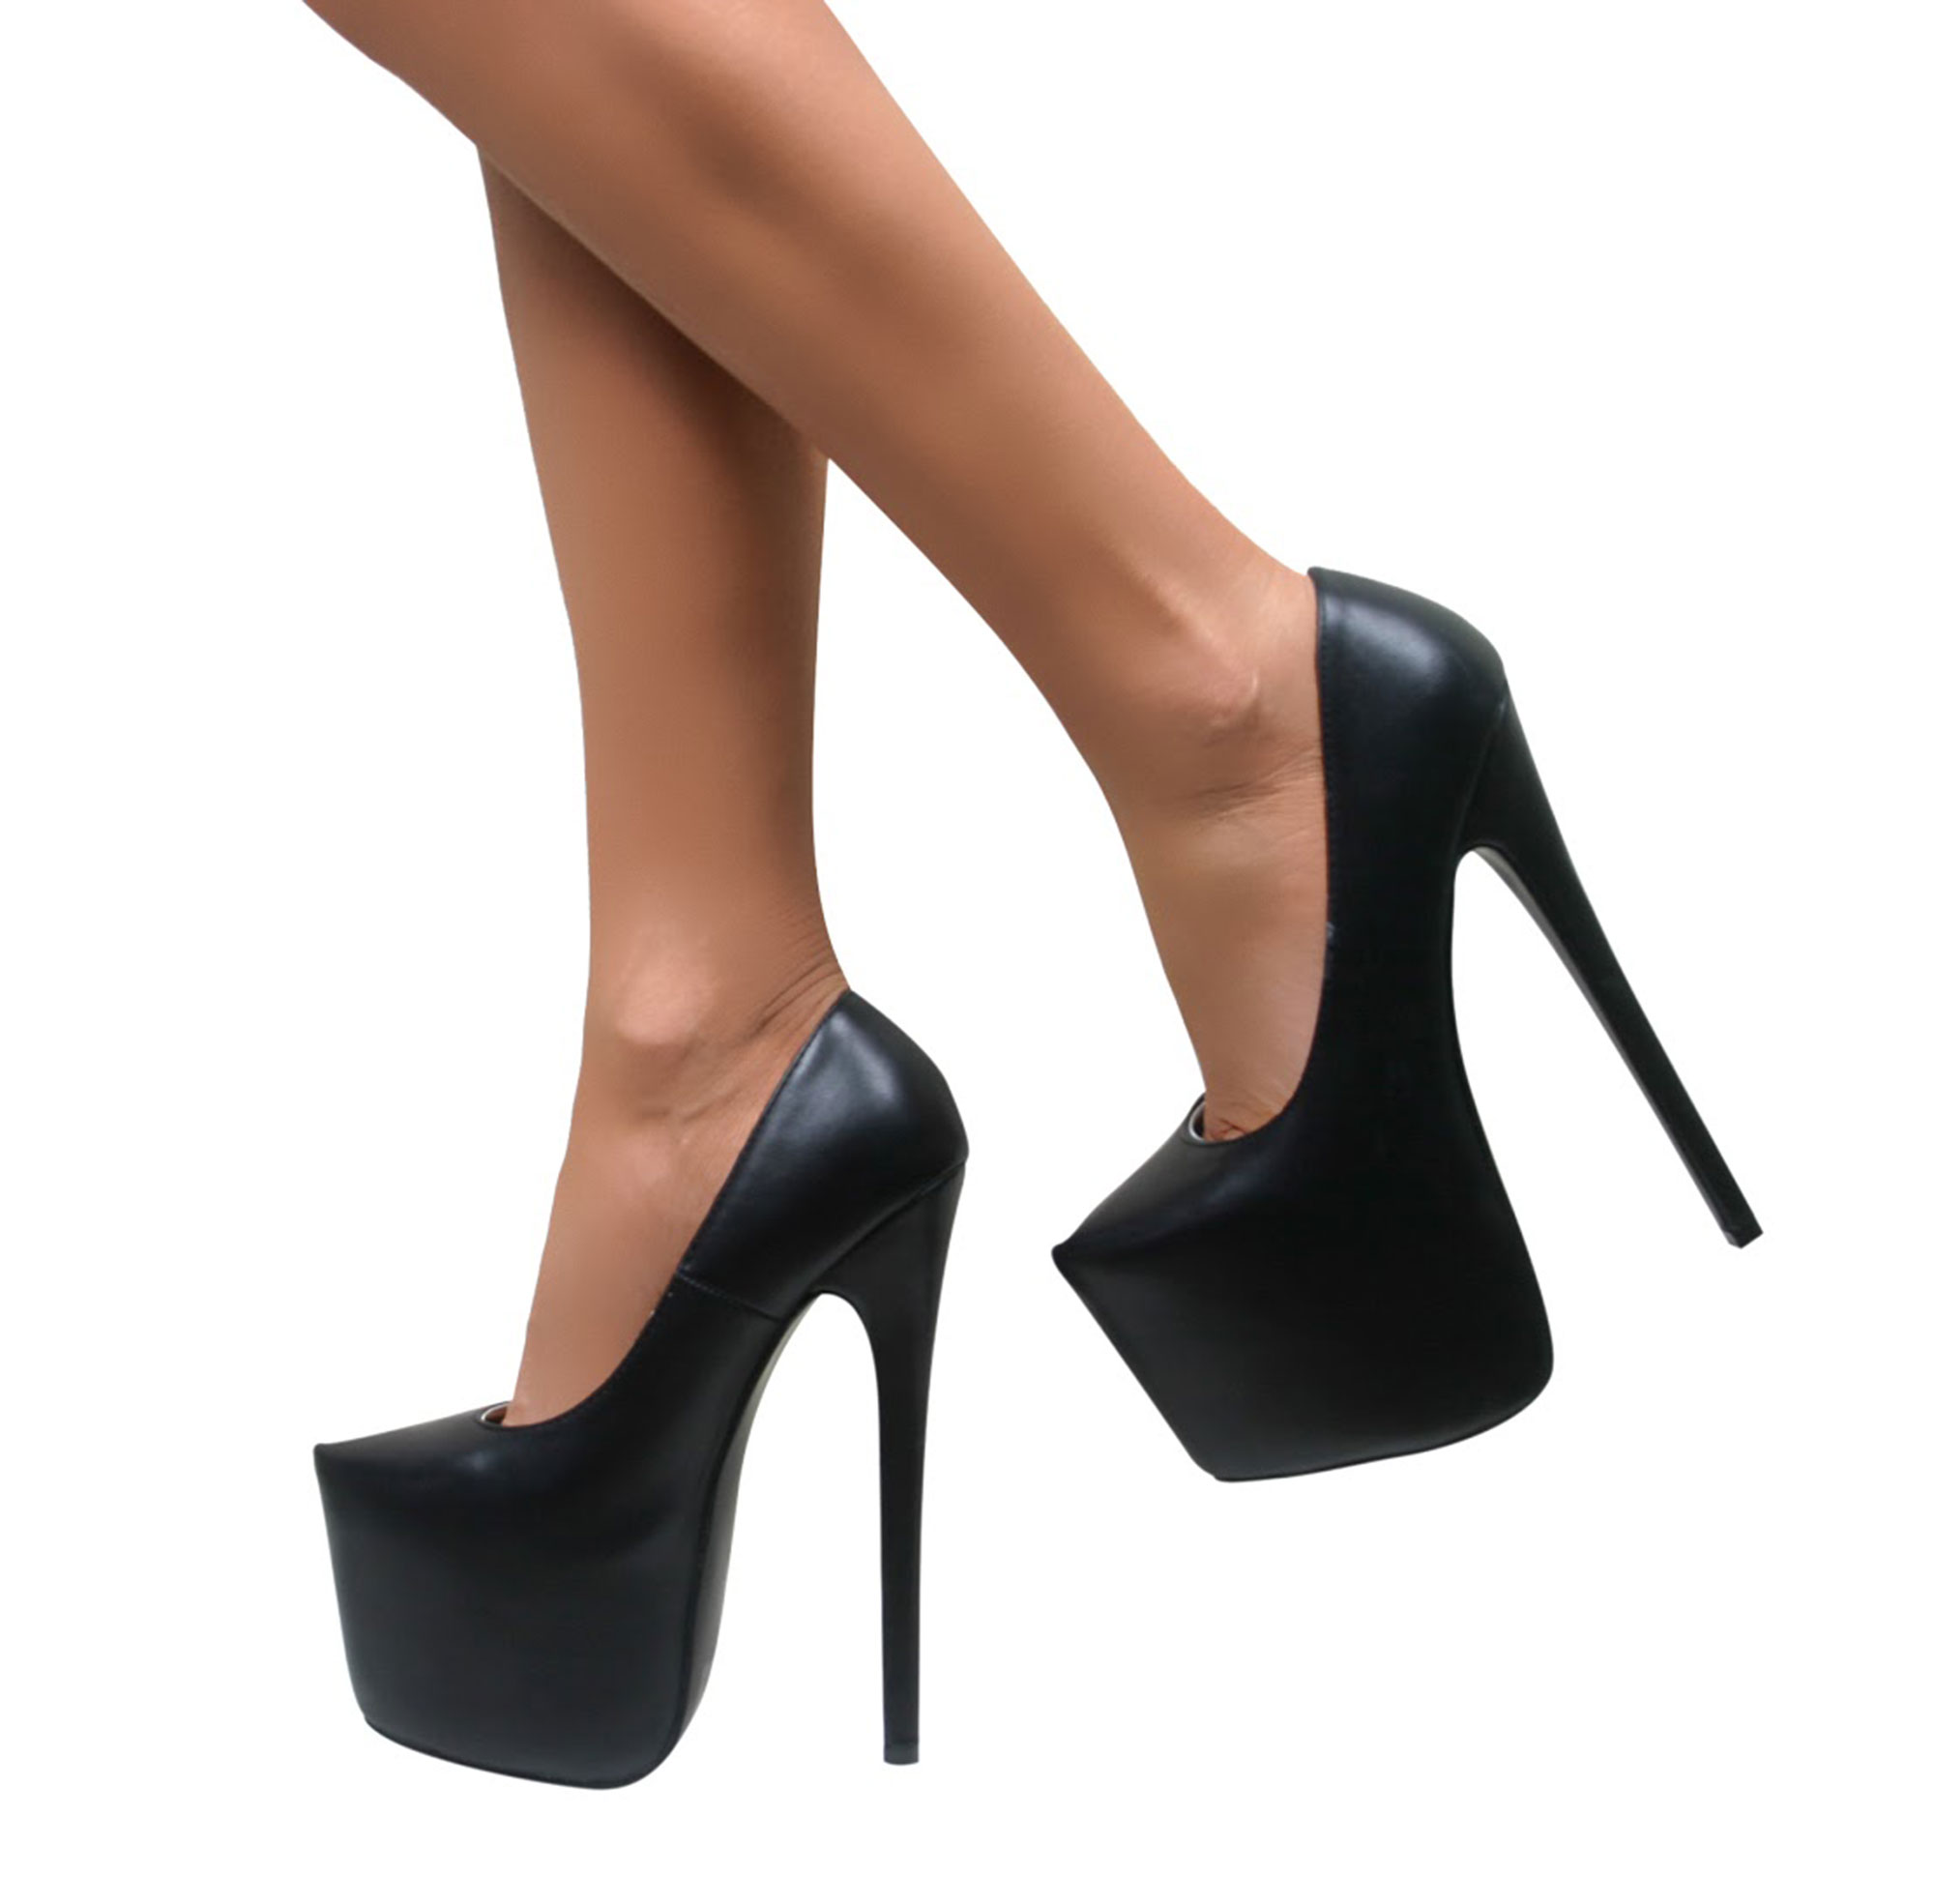 High High High Heels - Is Heel